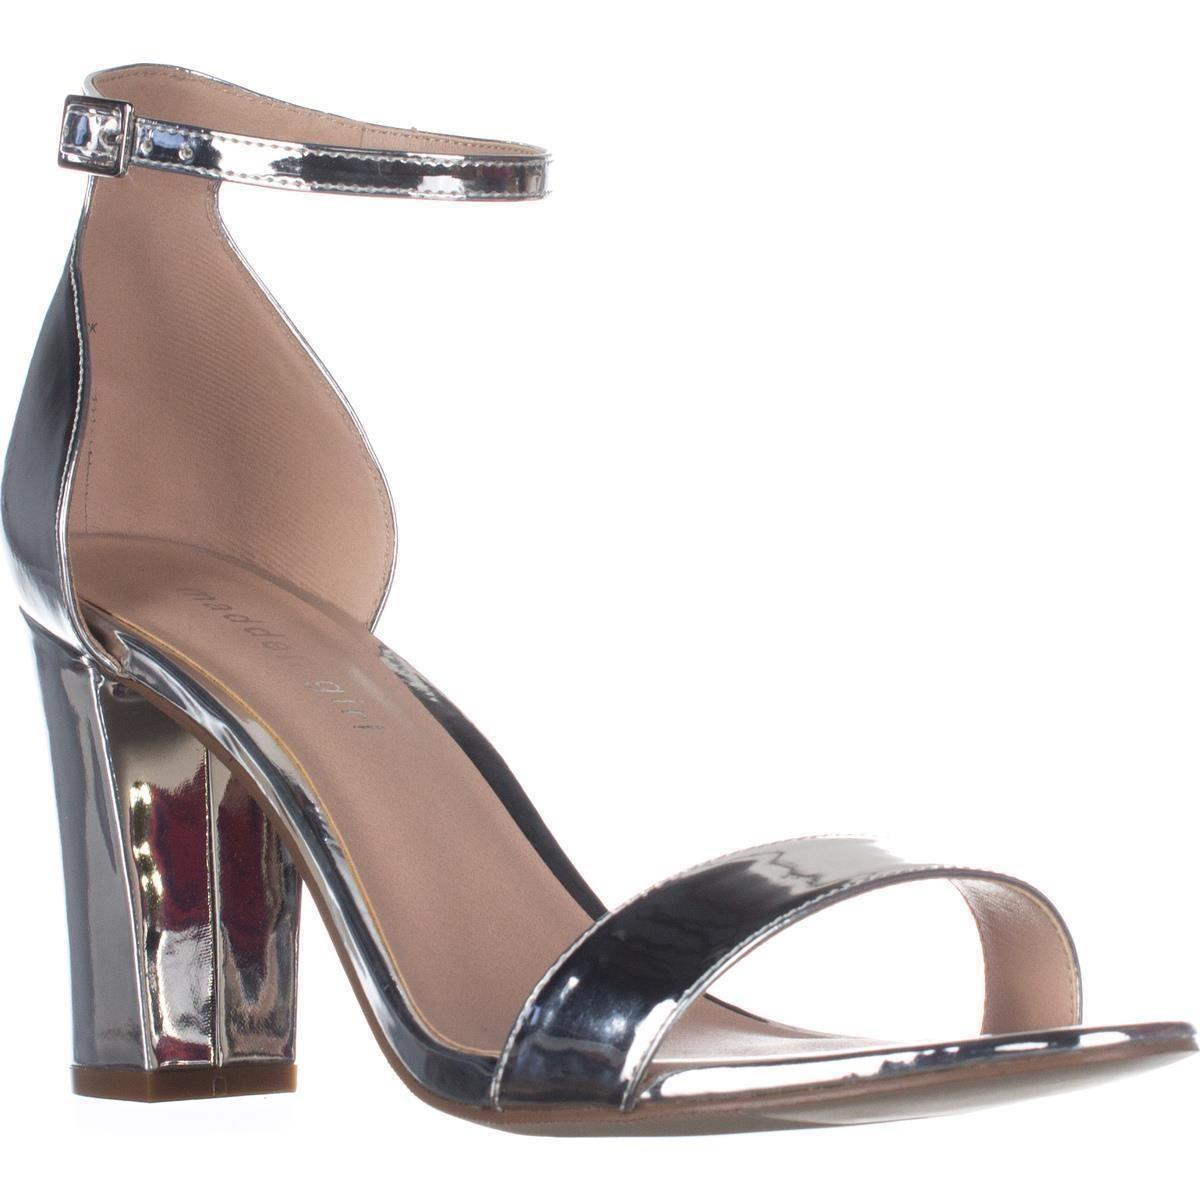 0d878dee586 Lyst - Madden Girl Beella Dress Sandal in Metallic - Save 47%